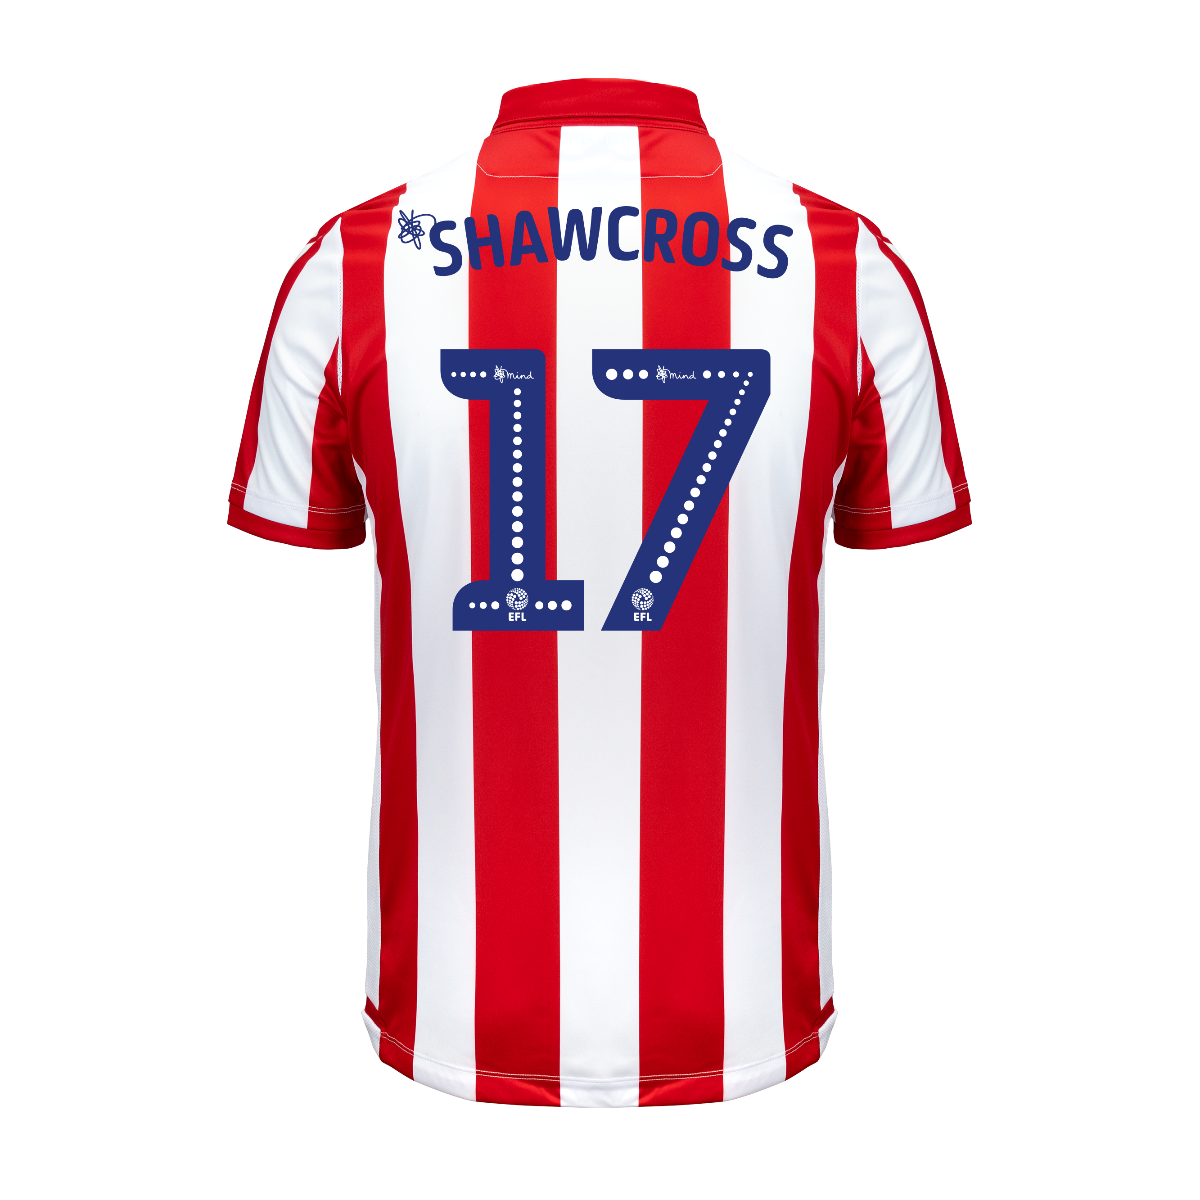 2019/20 Ladies Home Shirt - Shawcross